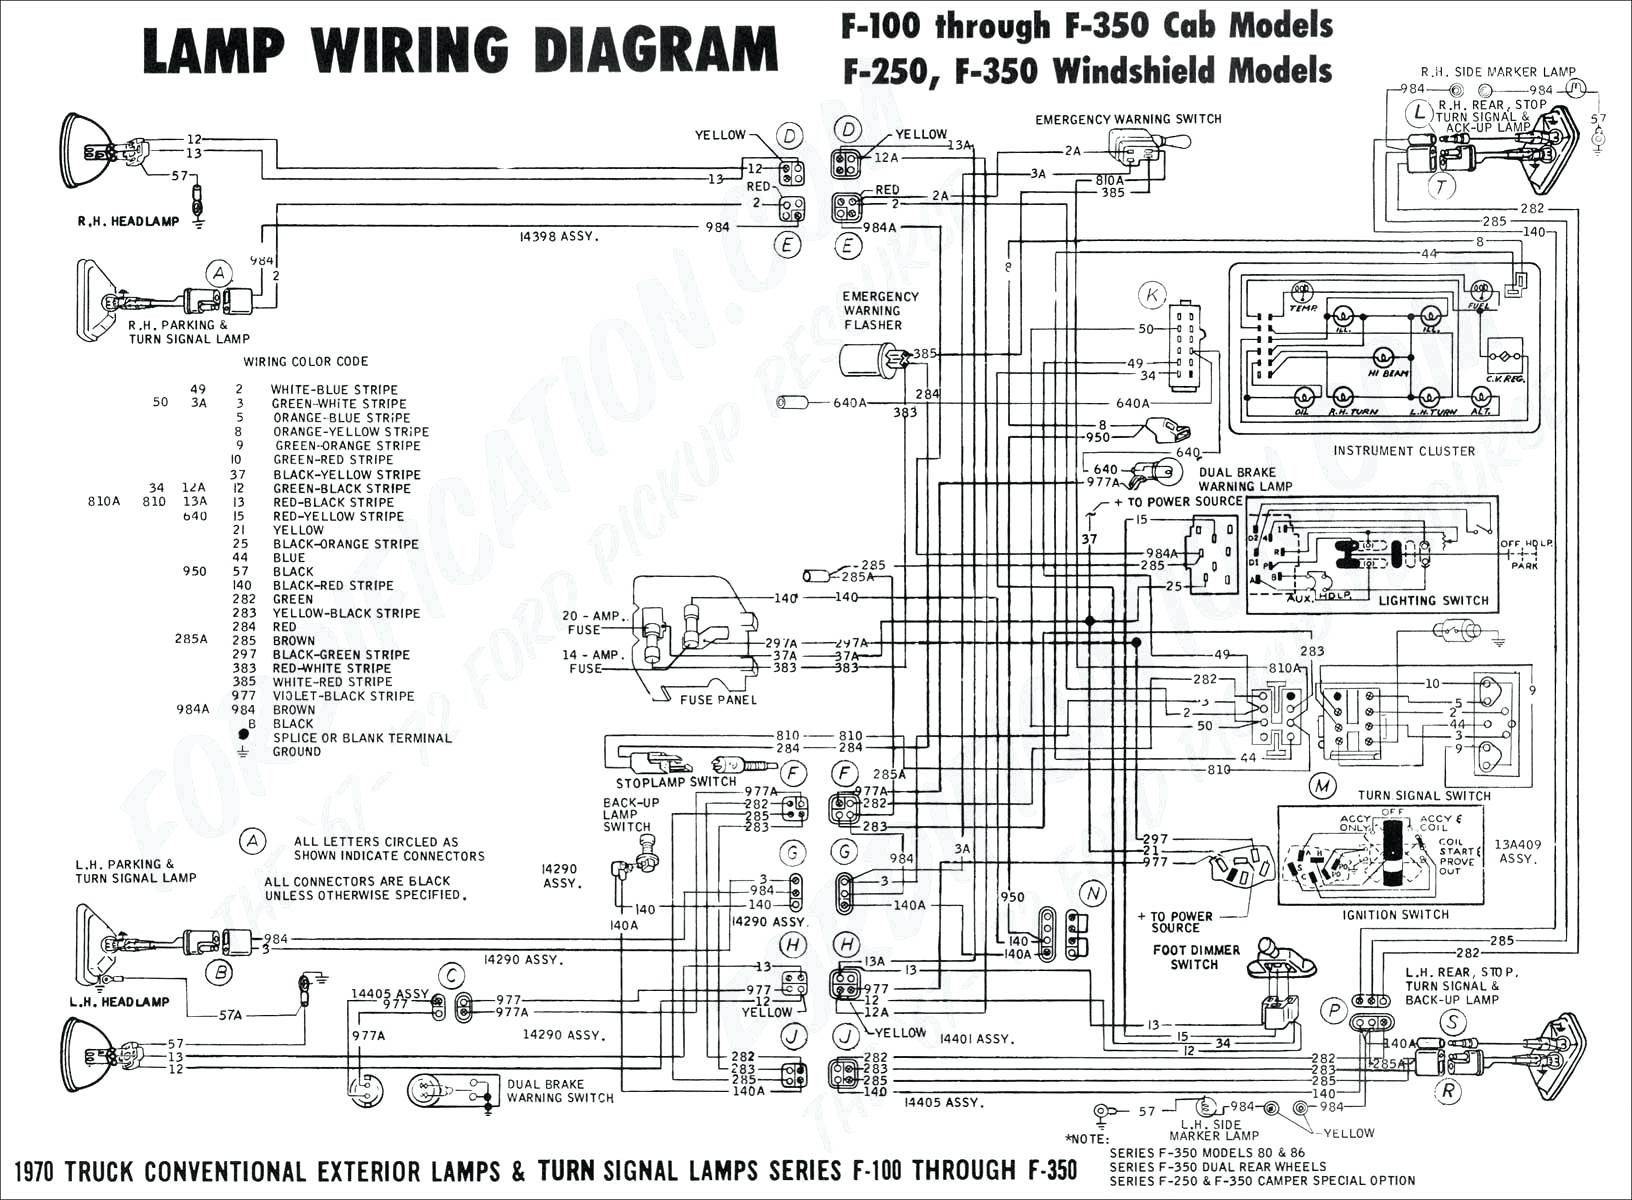 2006 mustang turn signal wiring diagram change your idea with rh wwicsgroup co